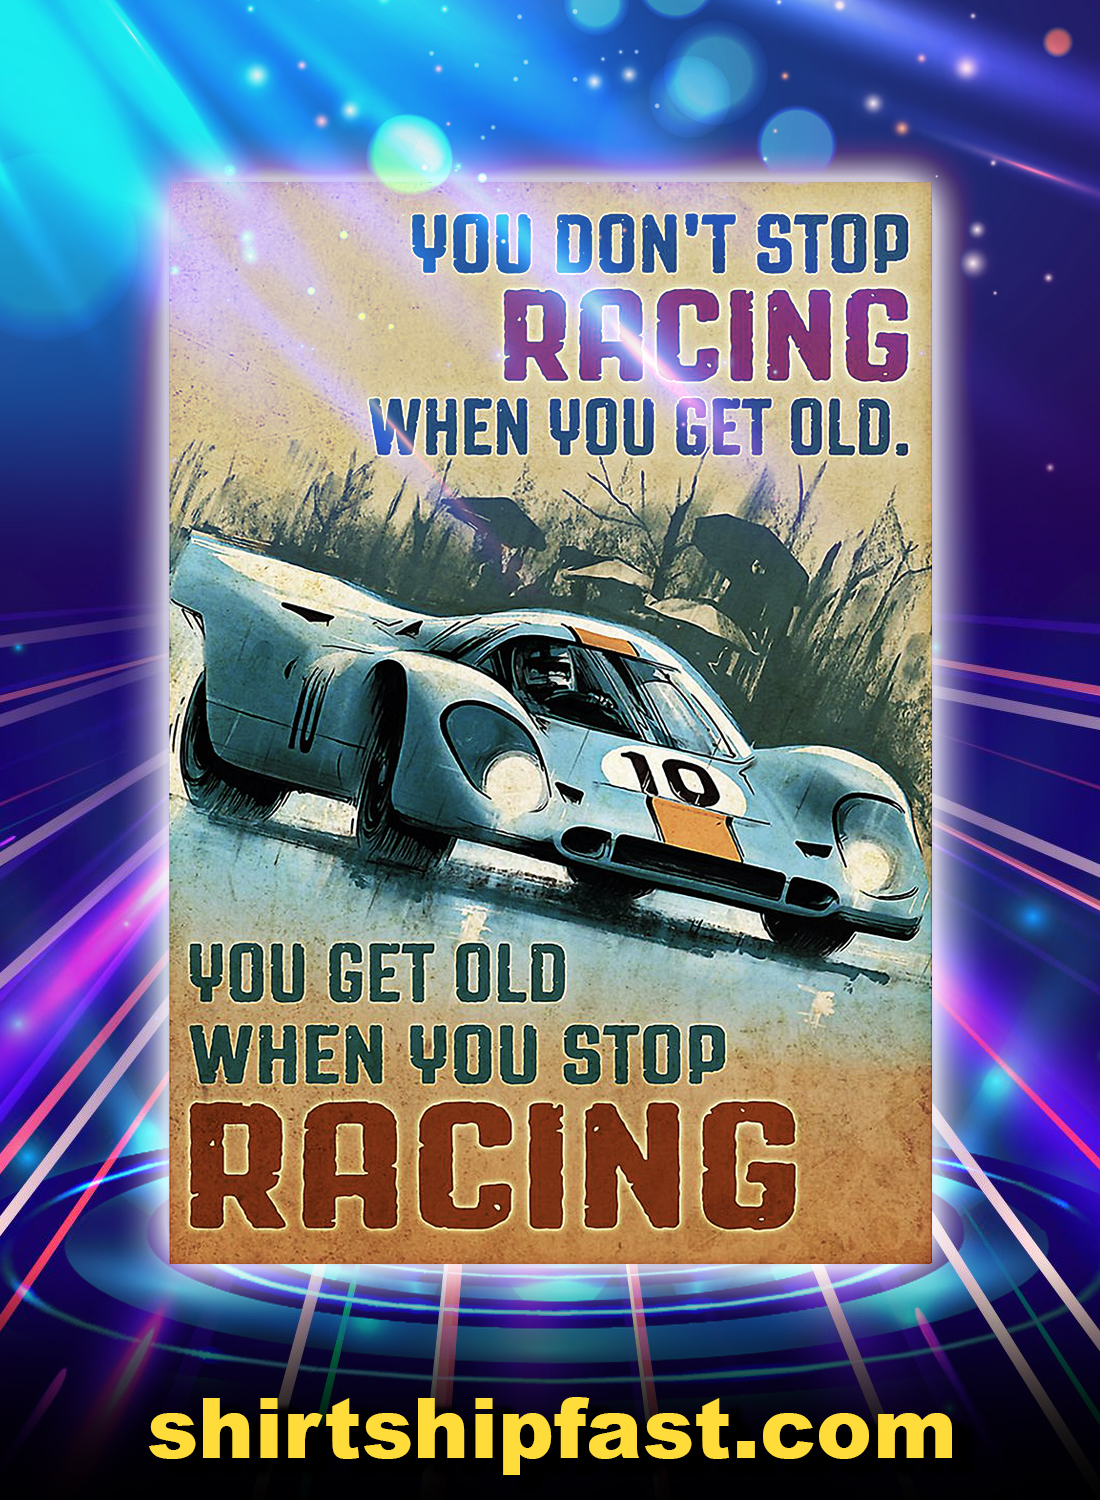 Sport car you don't stop racing when you get old poster - A4